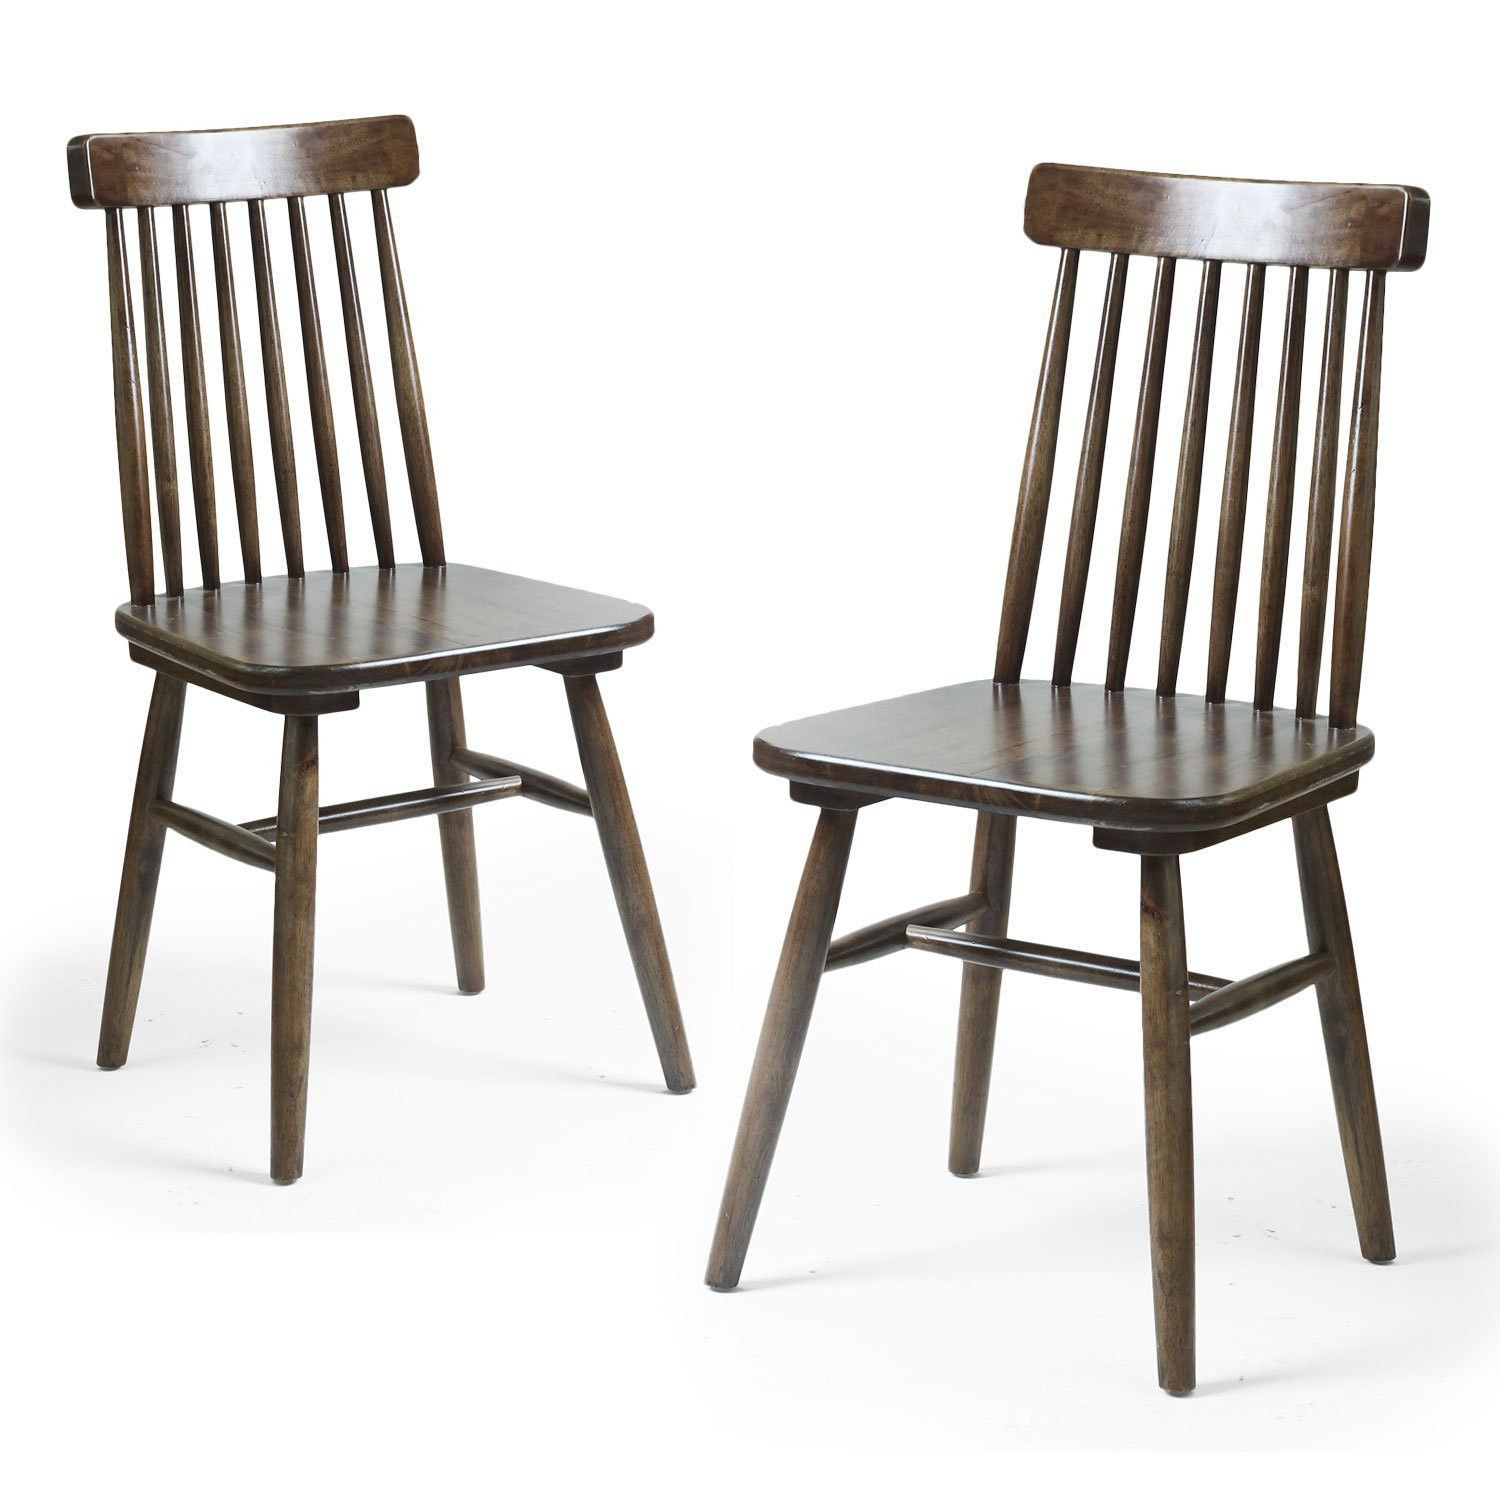 Vintage style dining chairs - Furnistar Elm Wood Vintage Style Dining Chair With Vertical Slat Back Set Of Two